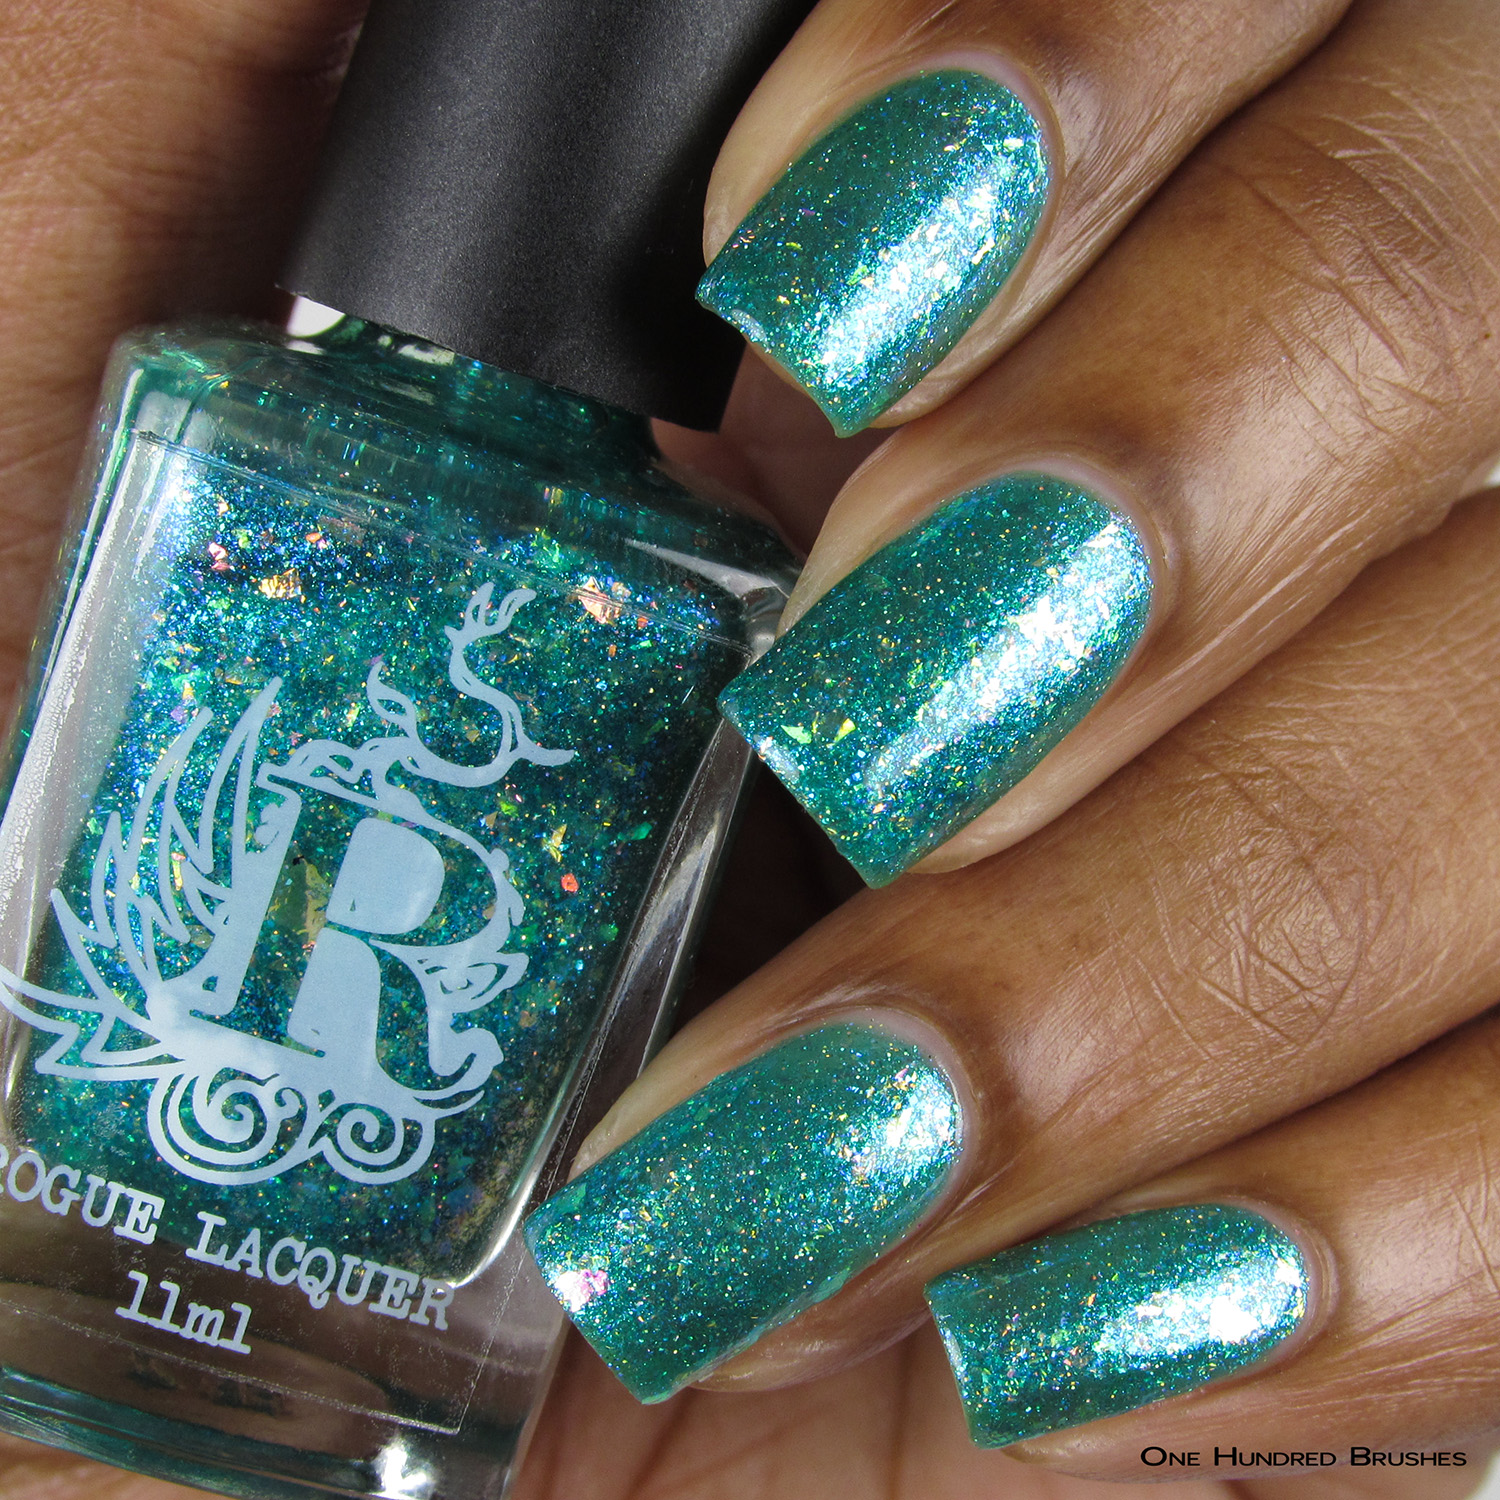 I Washed Up Like This - Bottle Front - Rogue Lacquer - Sirens of Summer June 2017